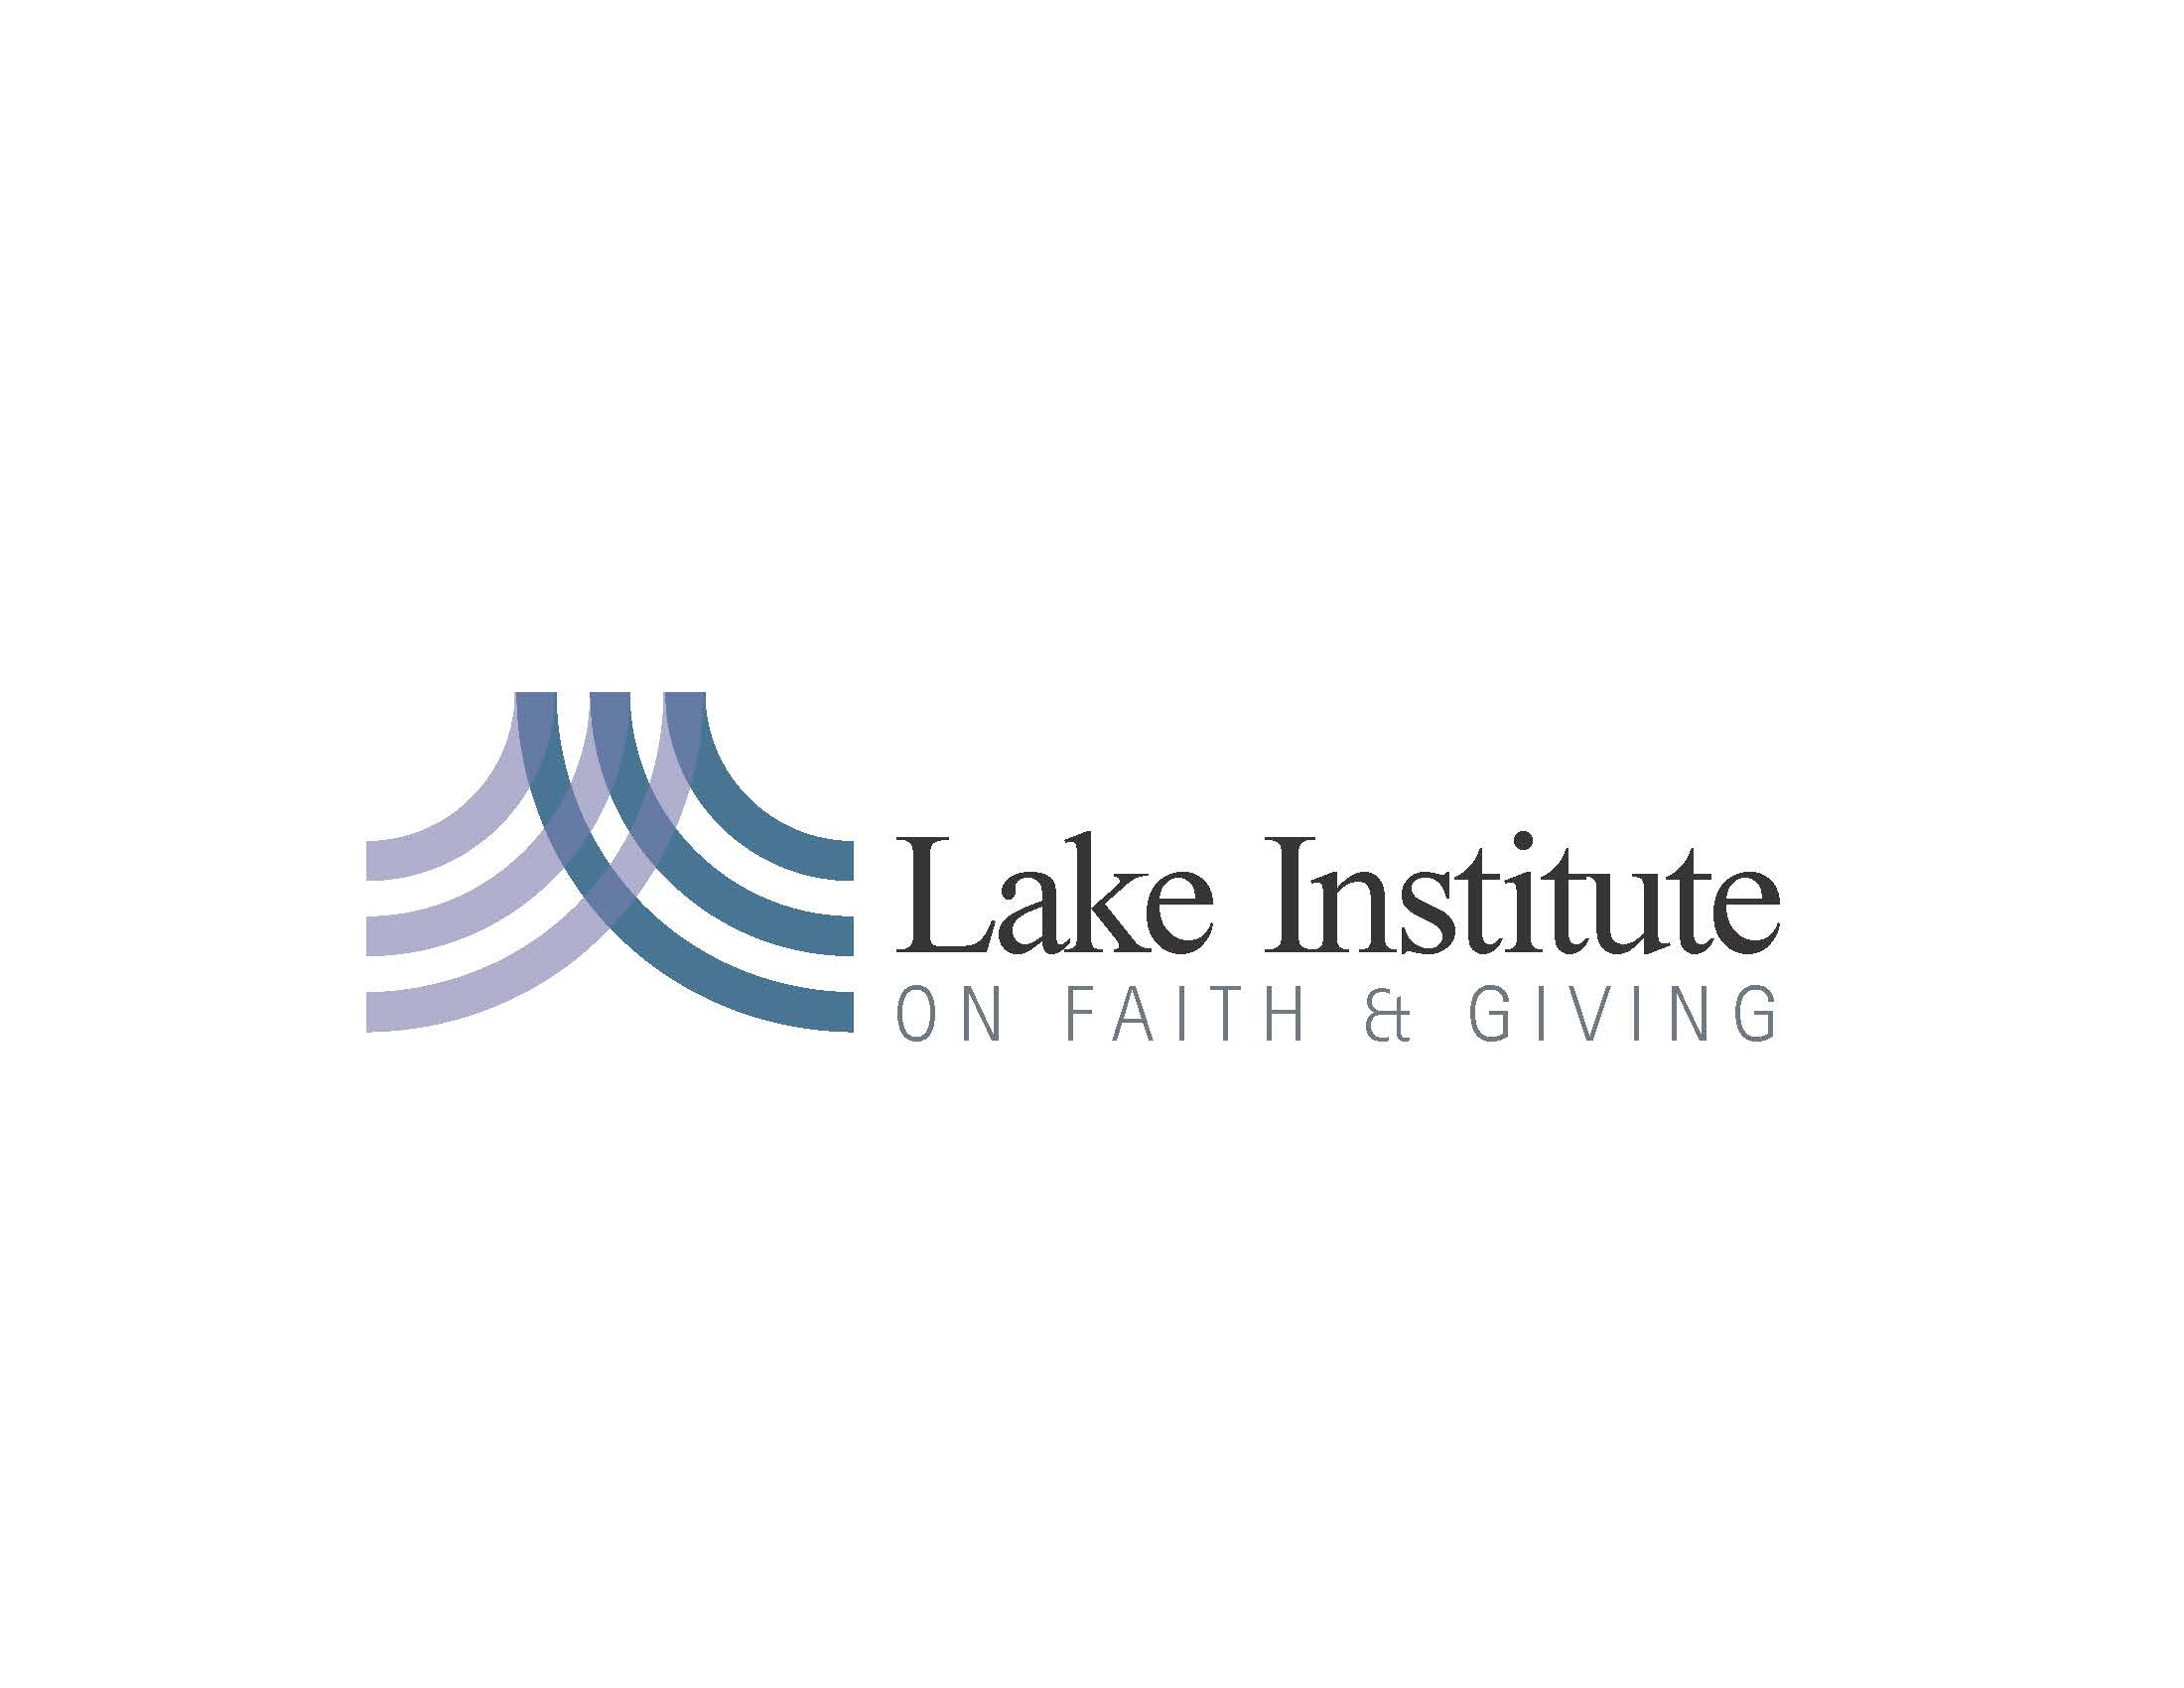 Lake Institute logo